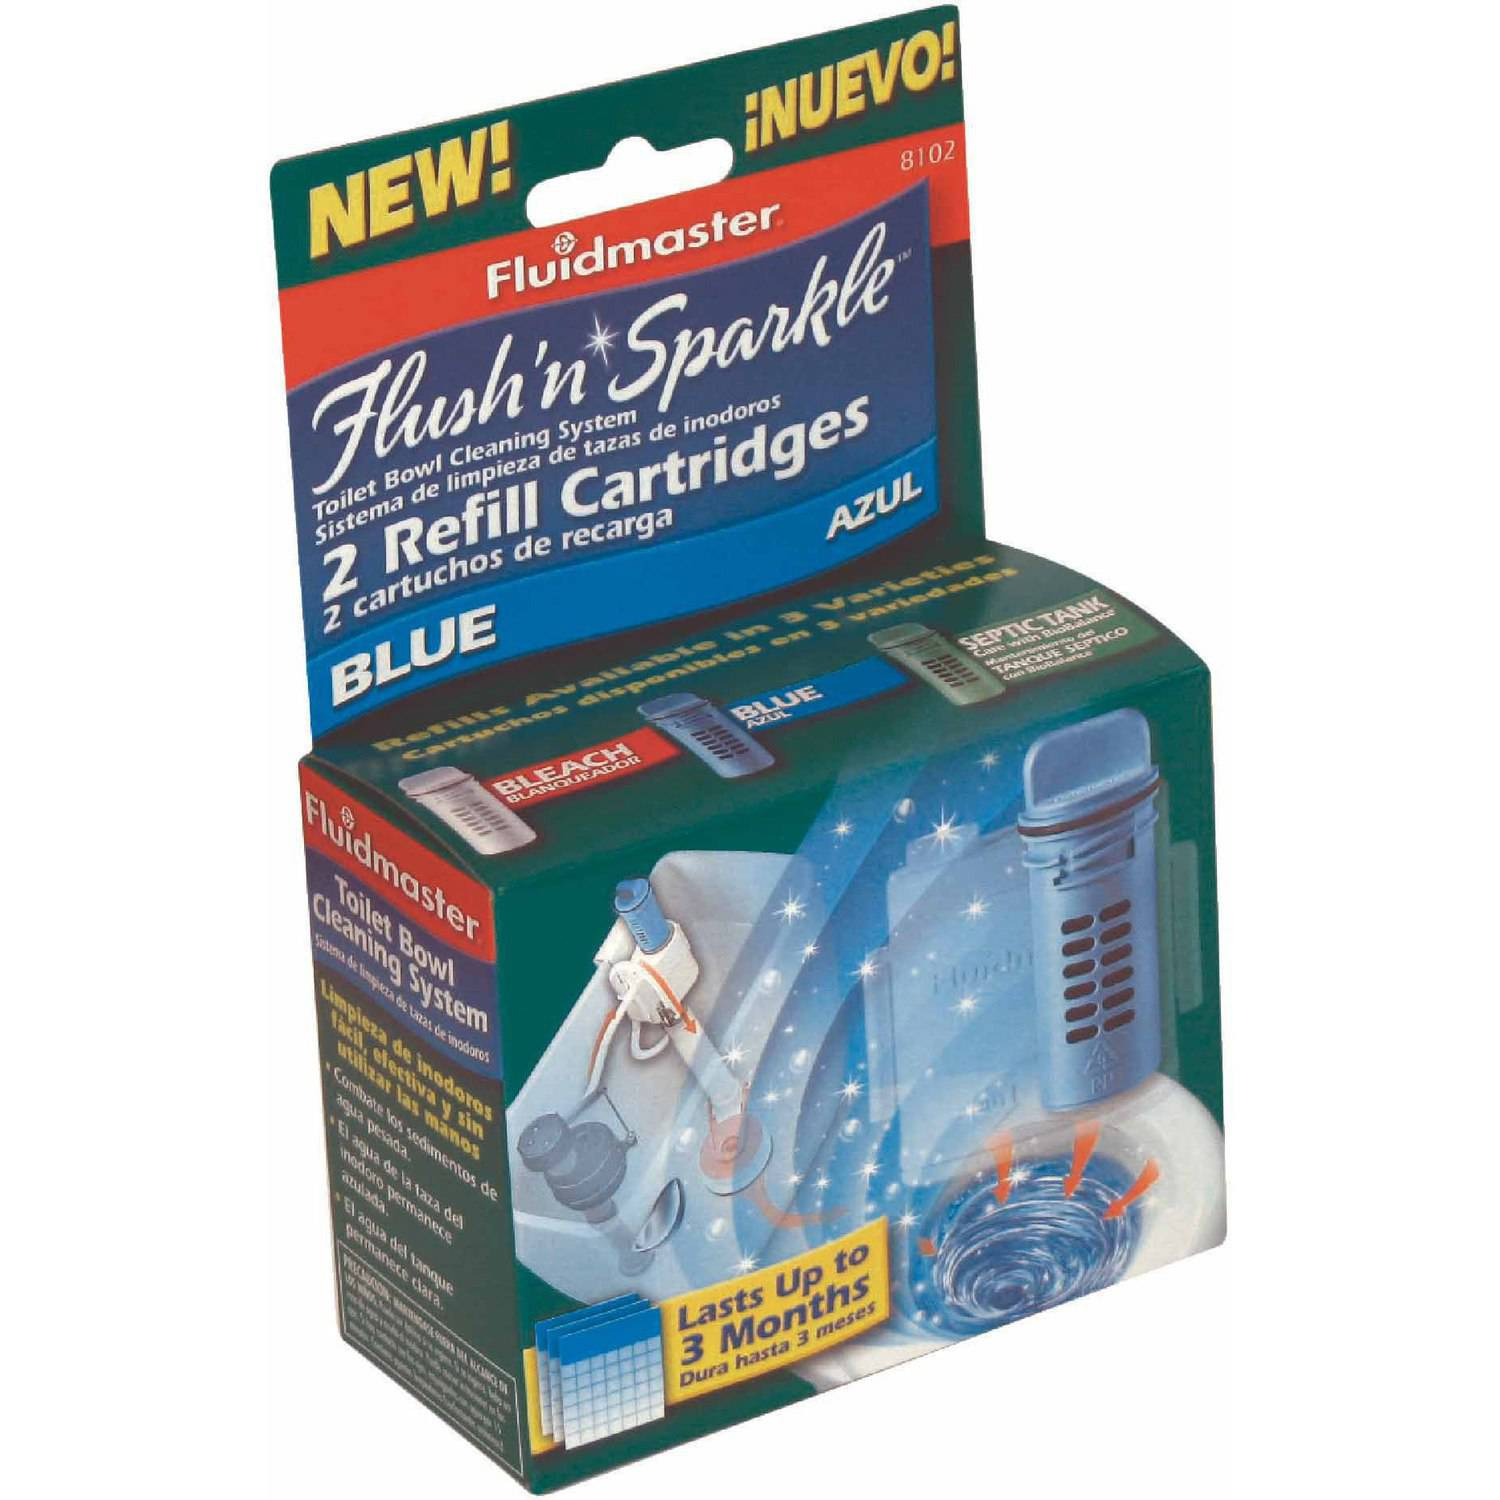 Fluidmaster 8102P8 Flush 'N' Sparkle Toilet Bowl Refill Cartridges 2 Count